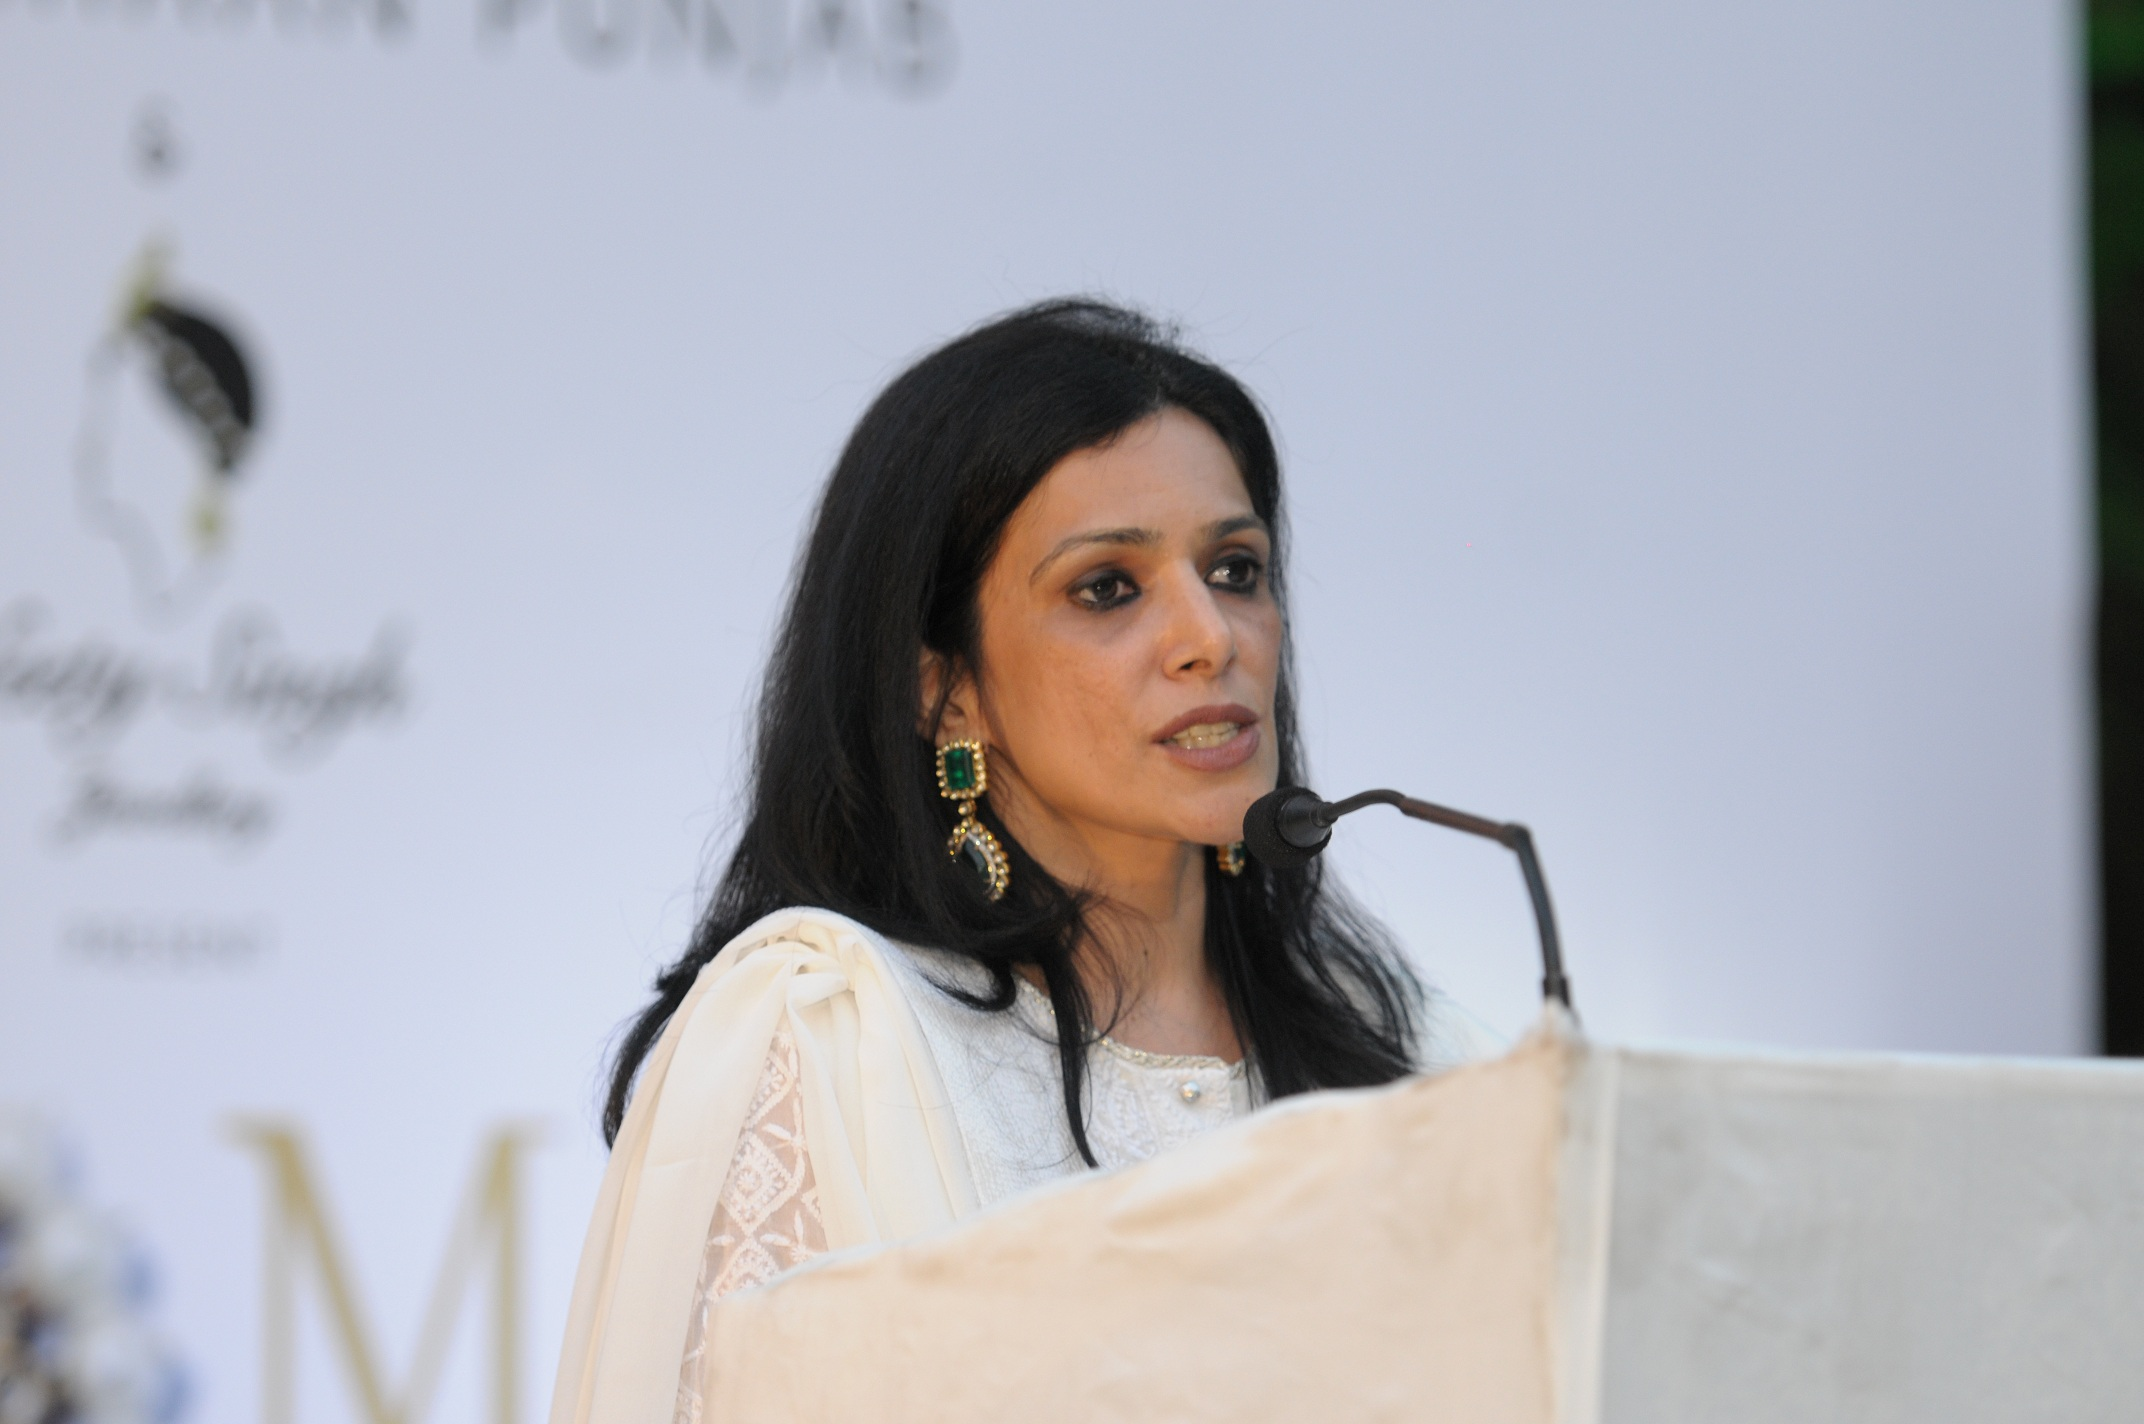 Neety Singh at the launch event of Woman-The Real Jewel-a tribute to Nanhi Chaan's woman empowerment initiatives by j_